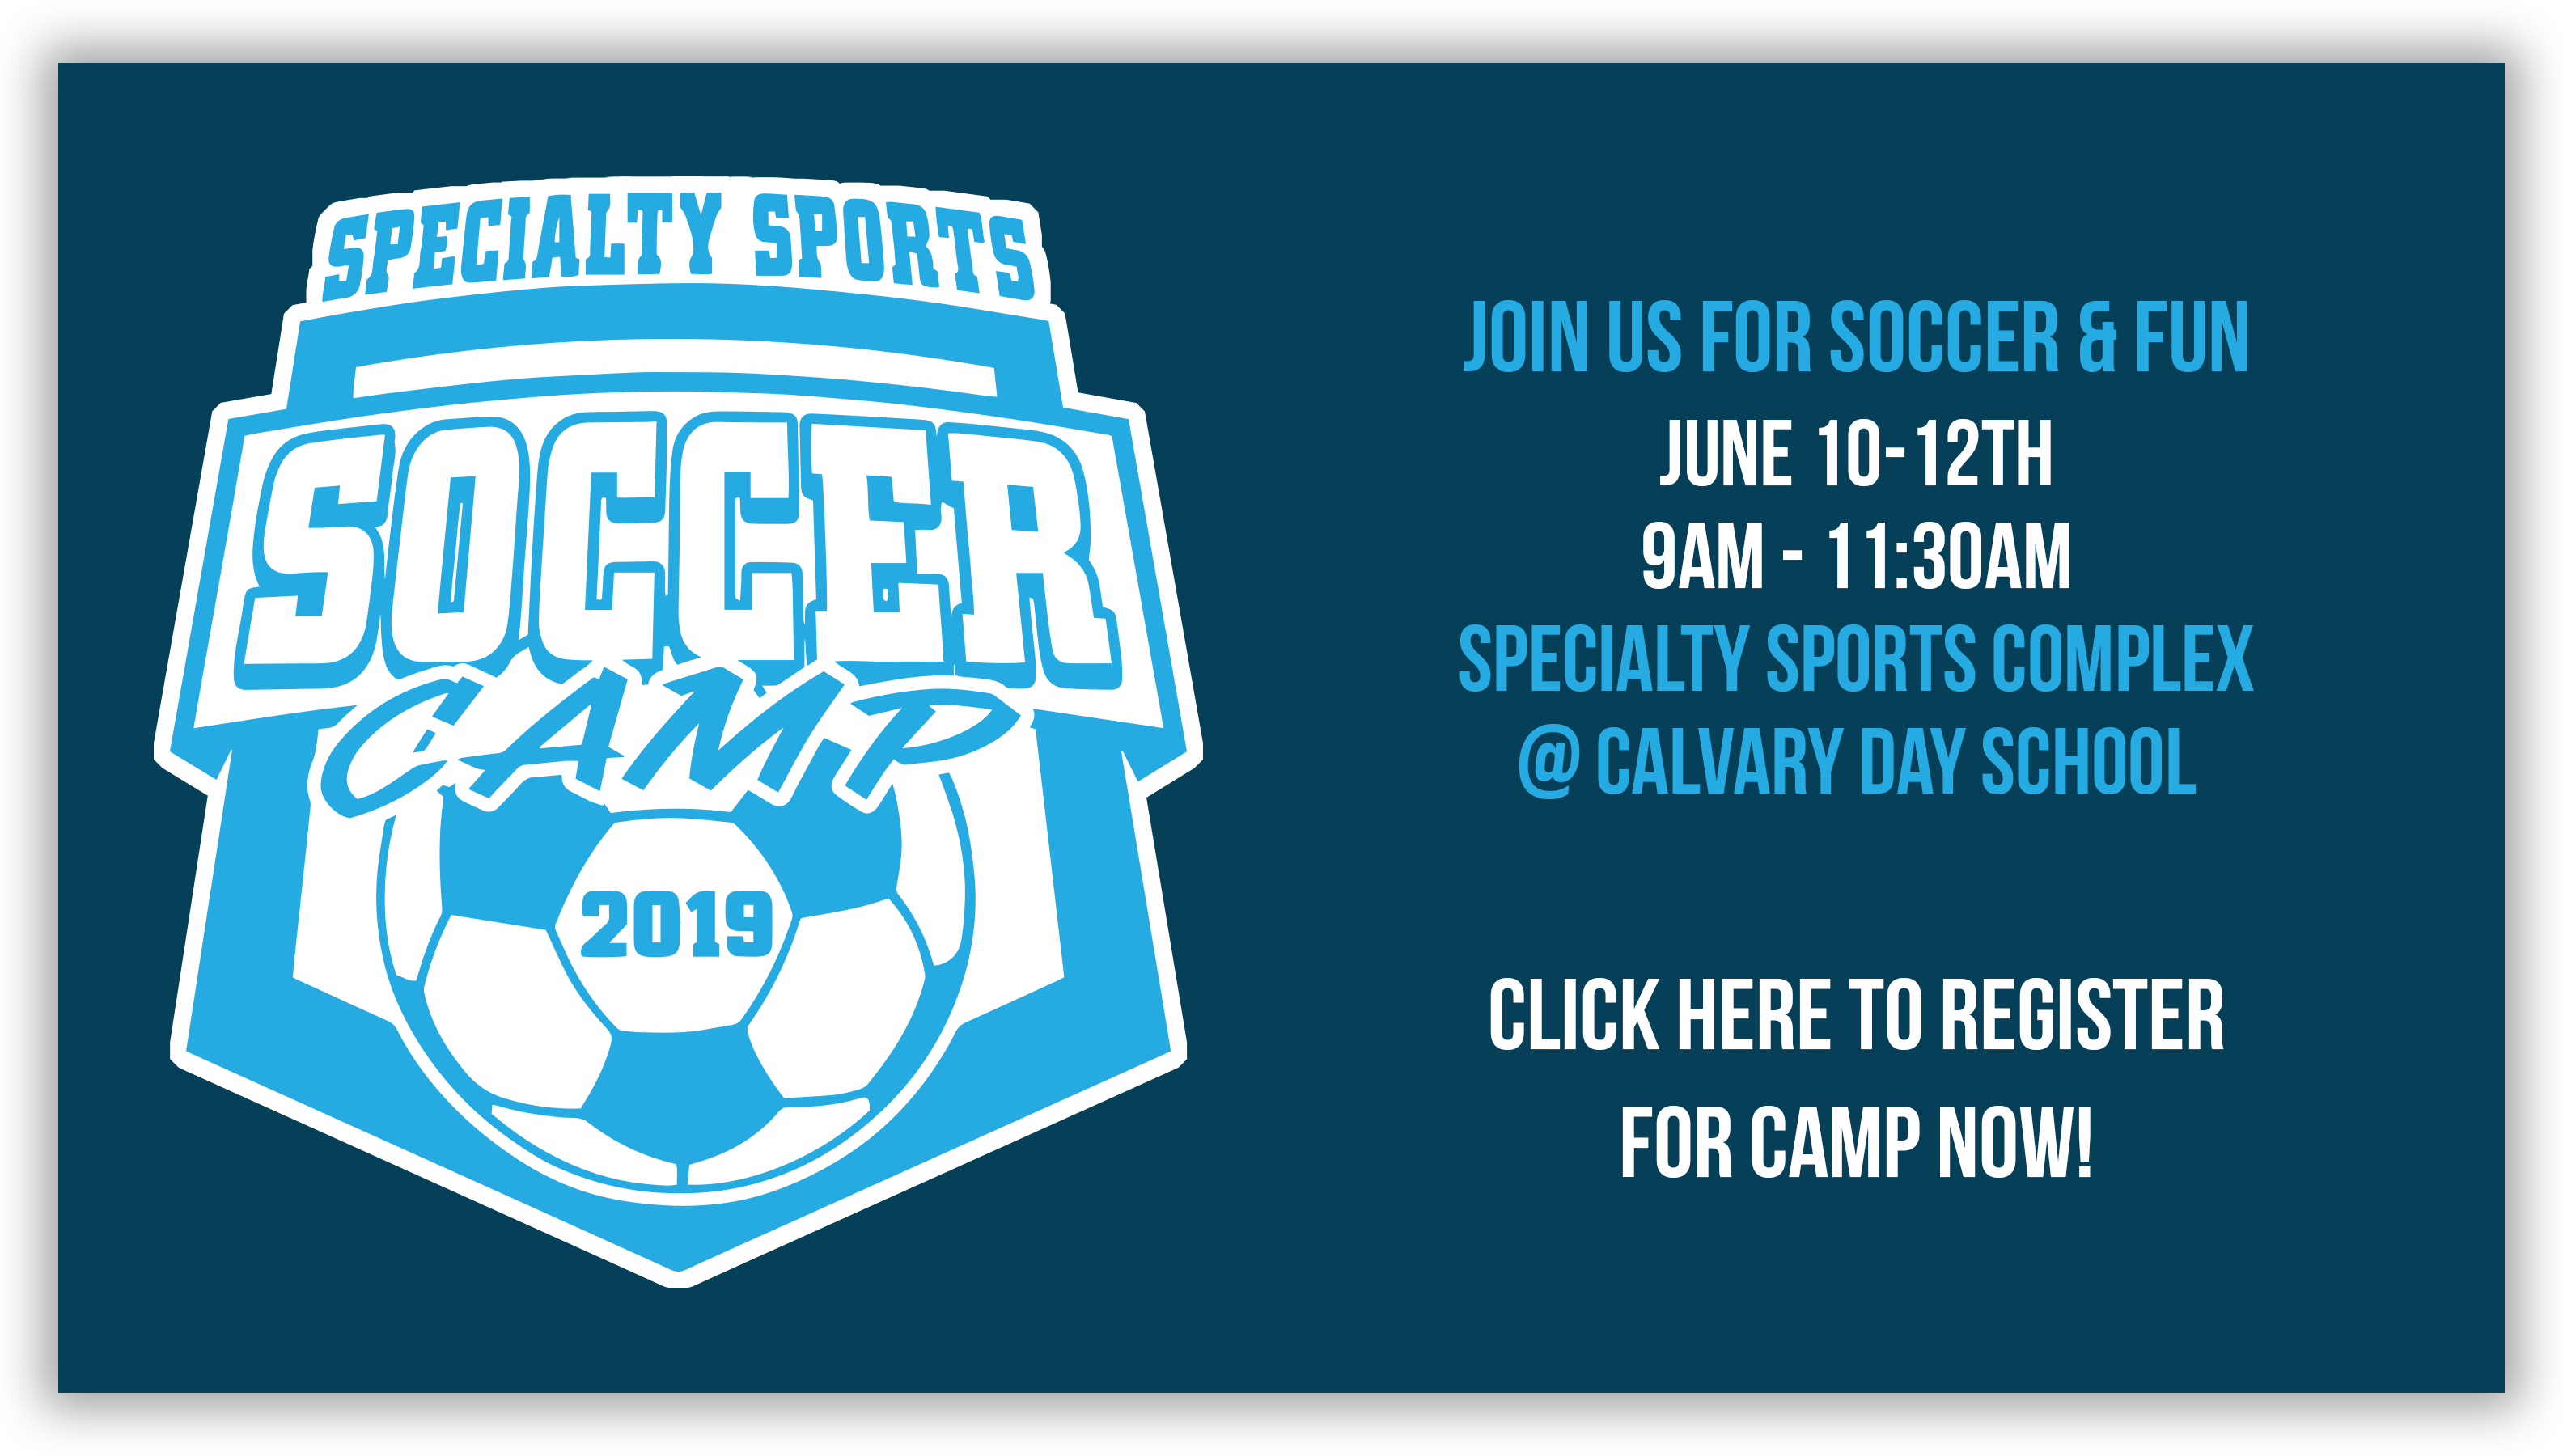 Specialty Sports Soccer Camp 2019